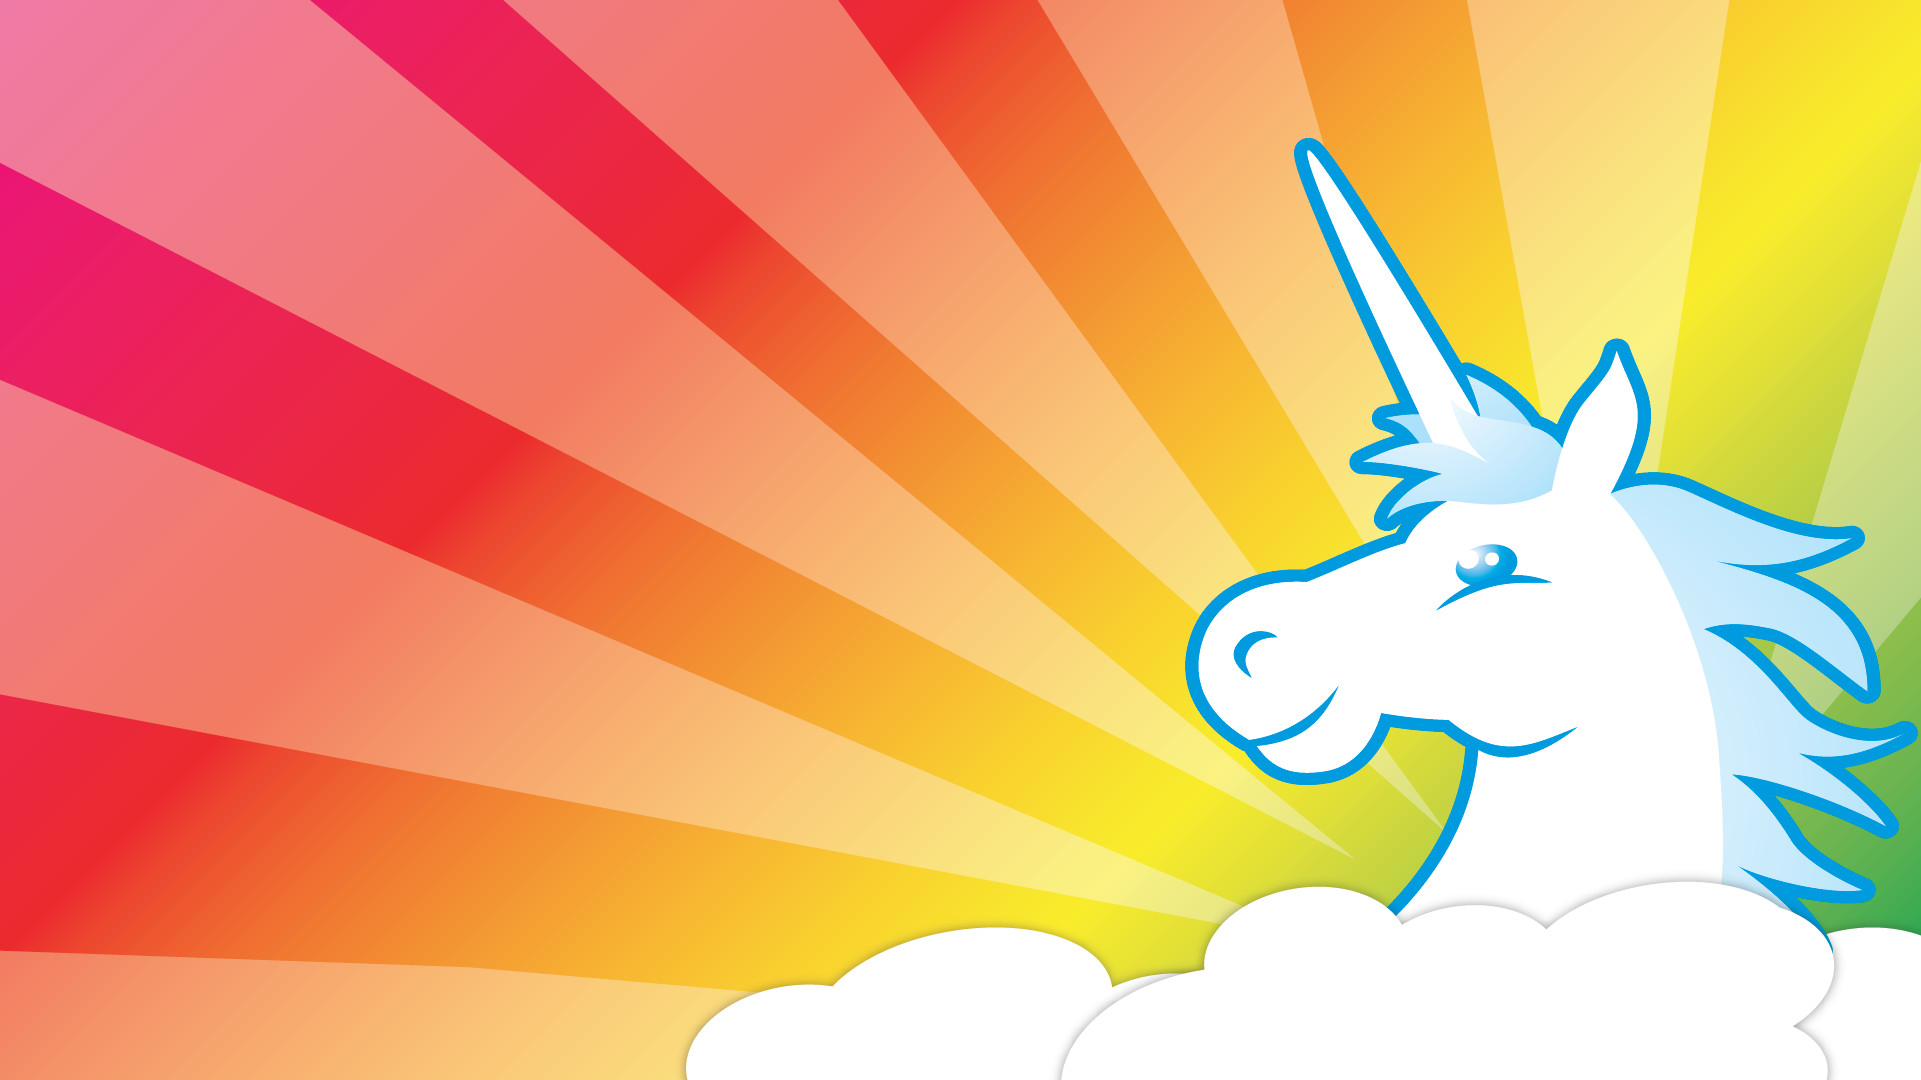 Wallpapers For > Unicorns And Rainbows Wallpaper